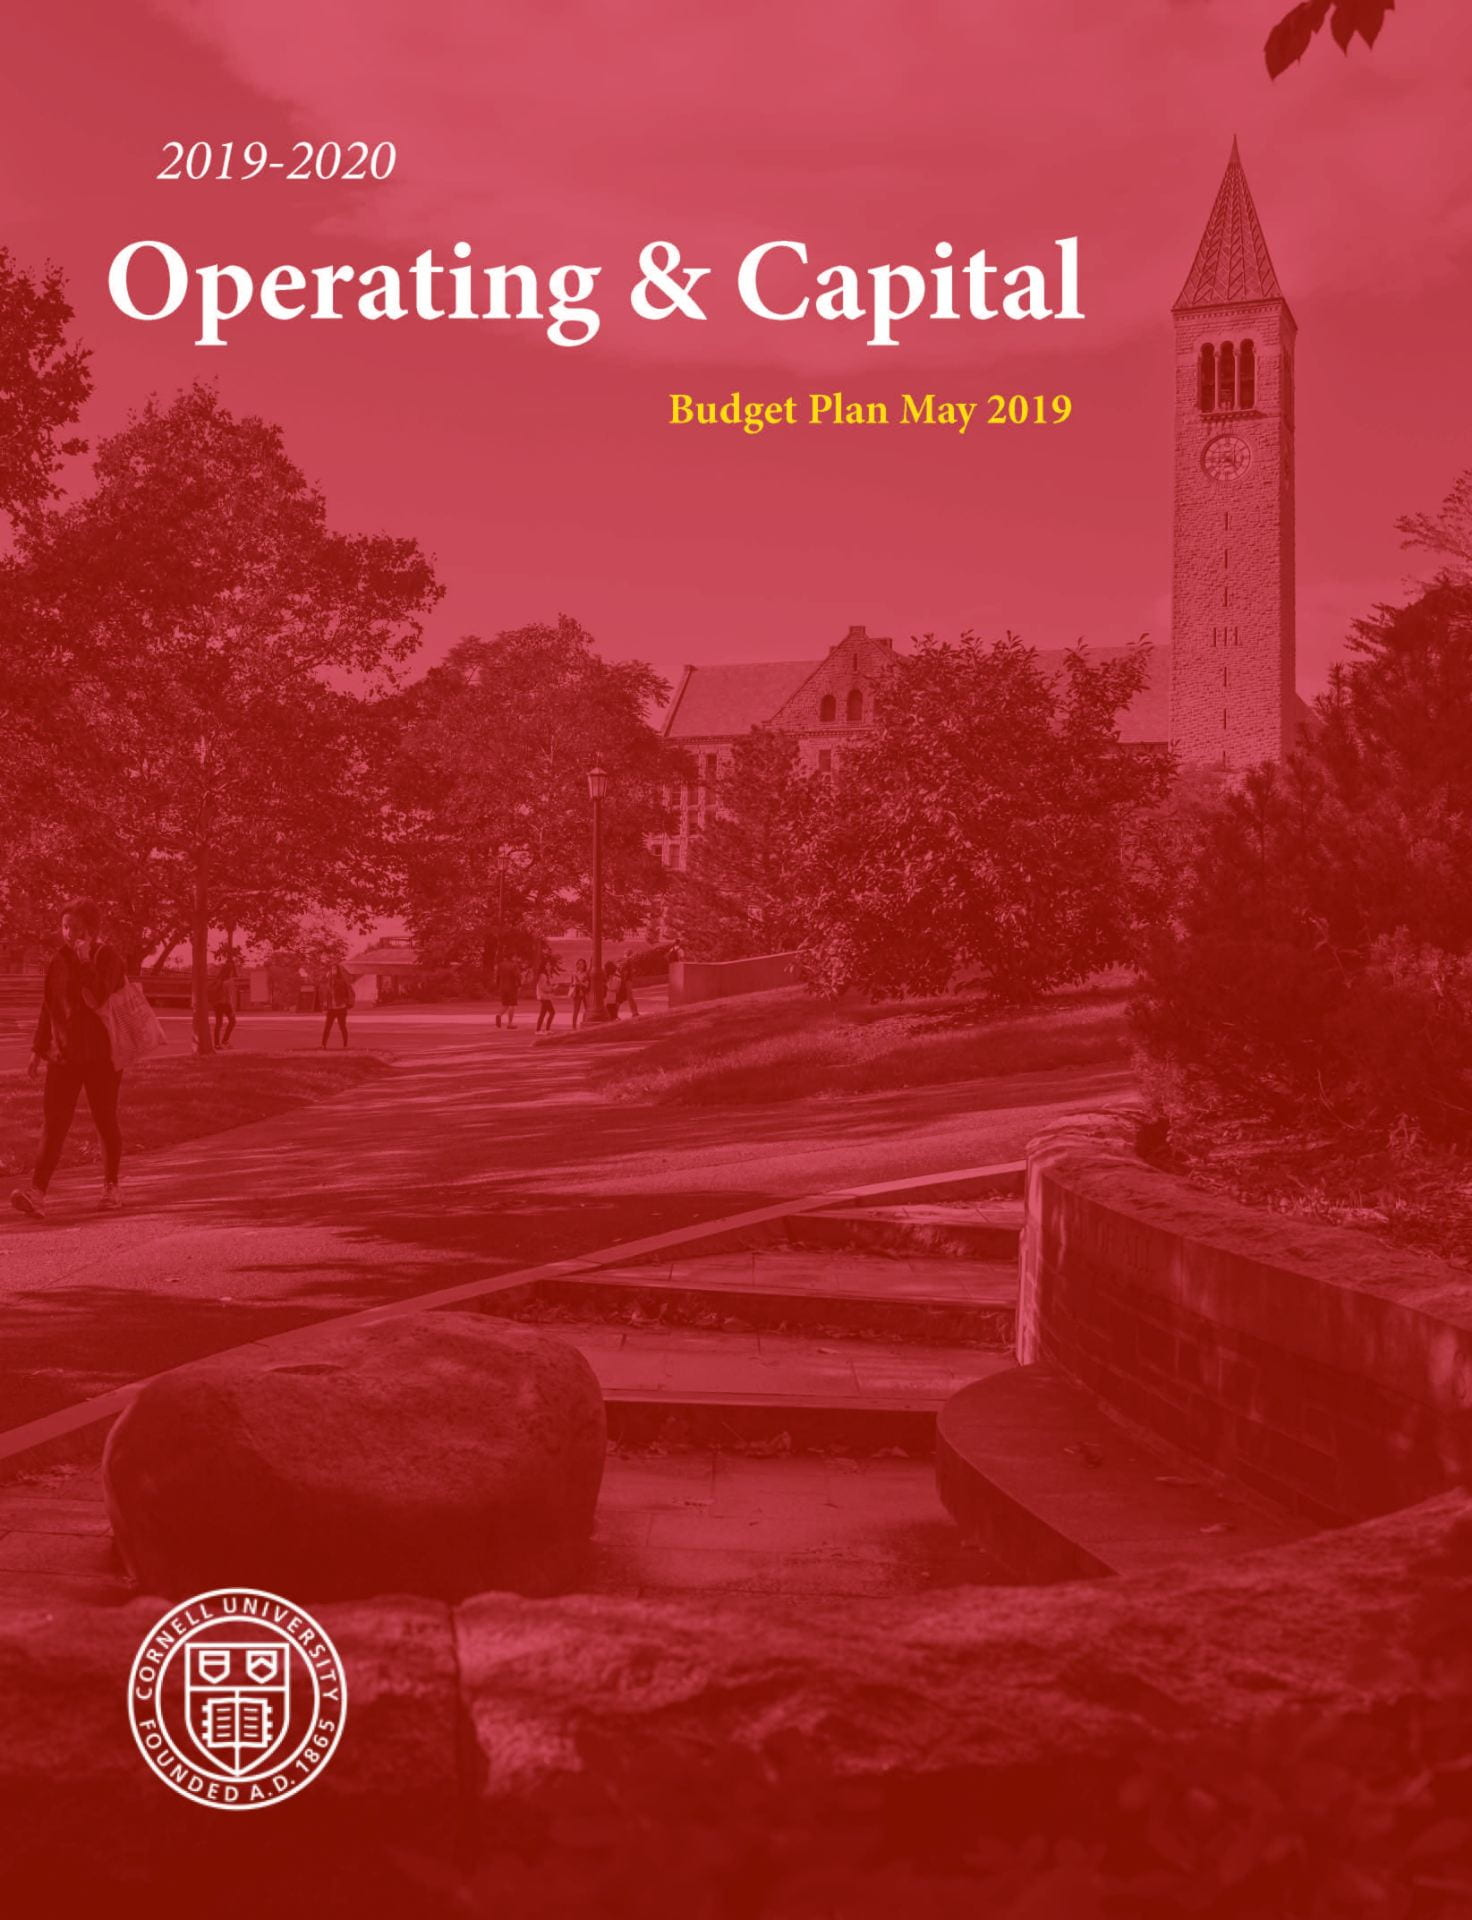 2019-2020 Operating And Capital Plan Cover